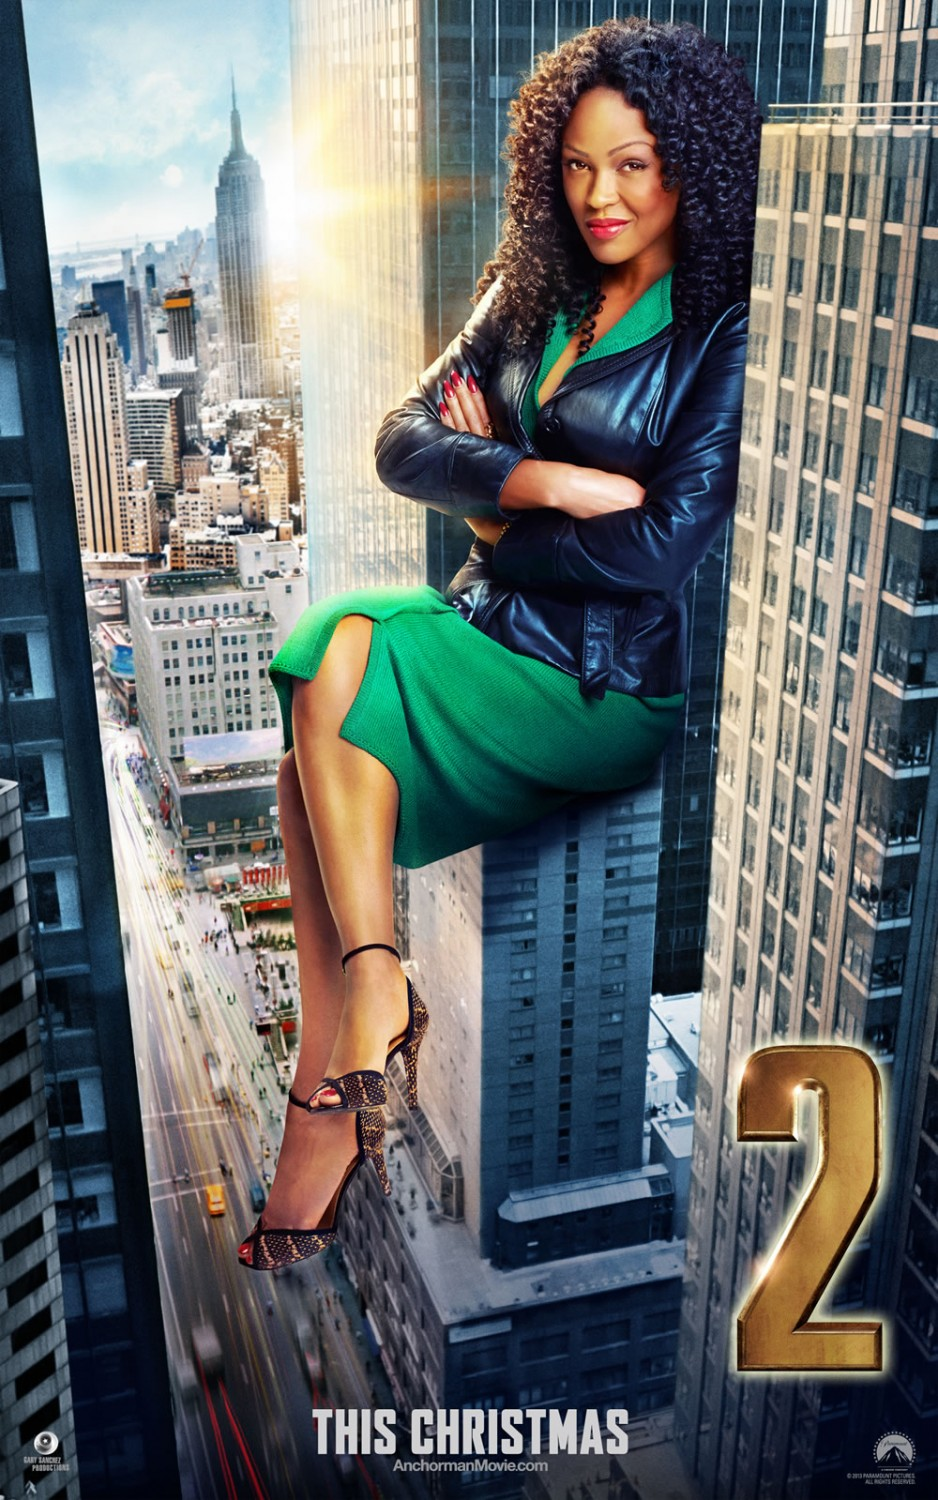 Anchorman 2 The Legend Continues-Official Poster Banner PROMO XLG-26NOVEMBRO2013-02